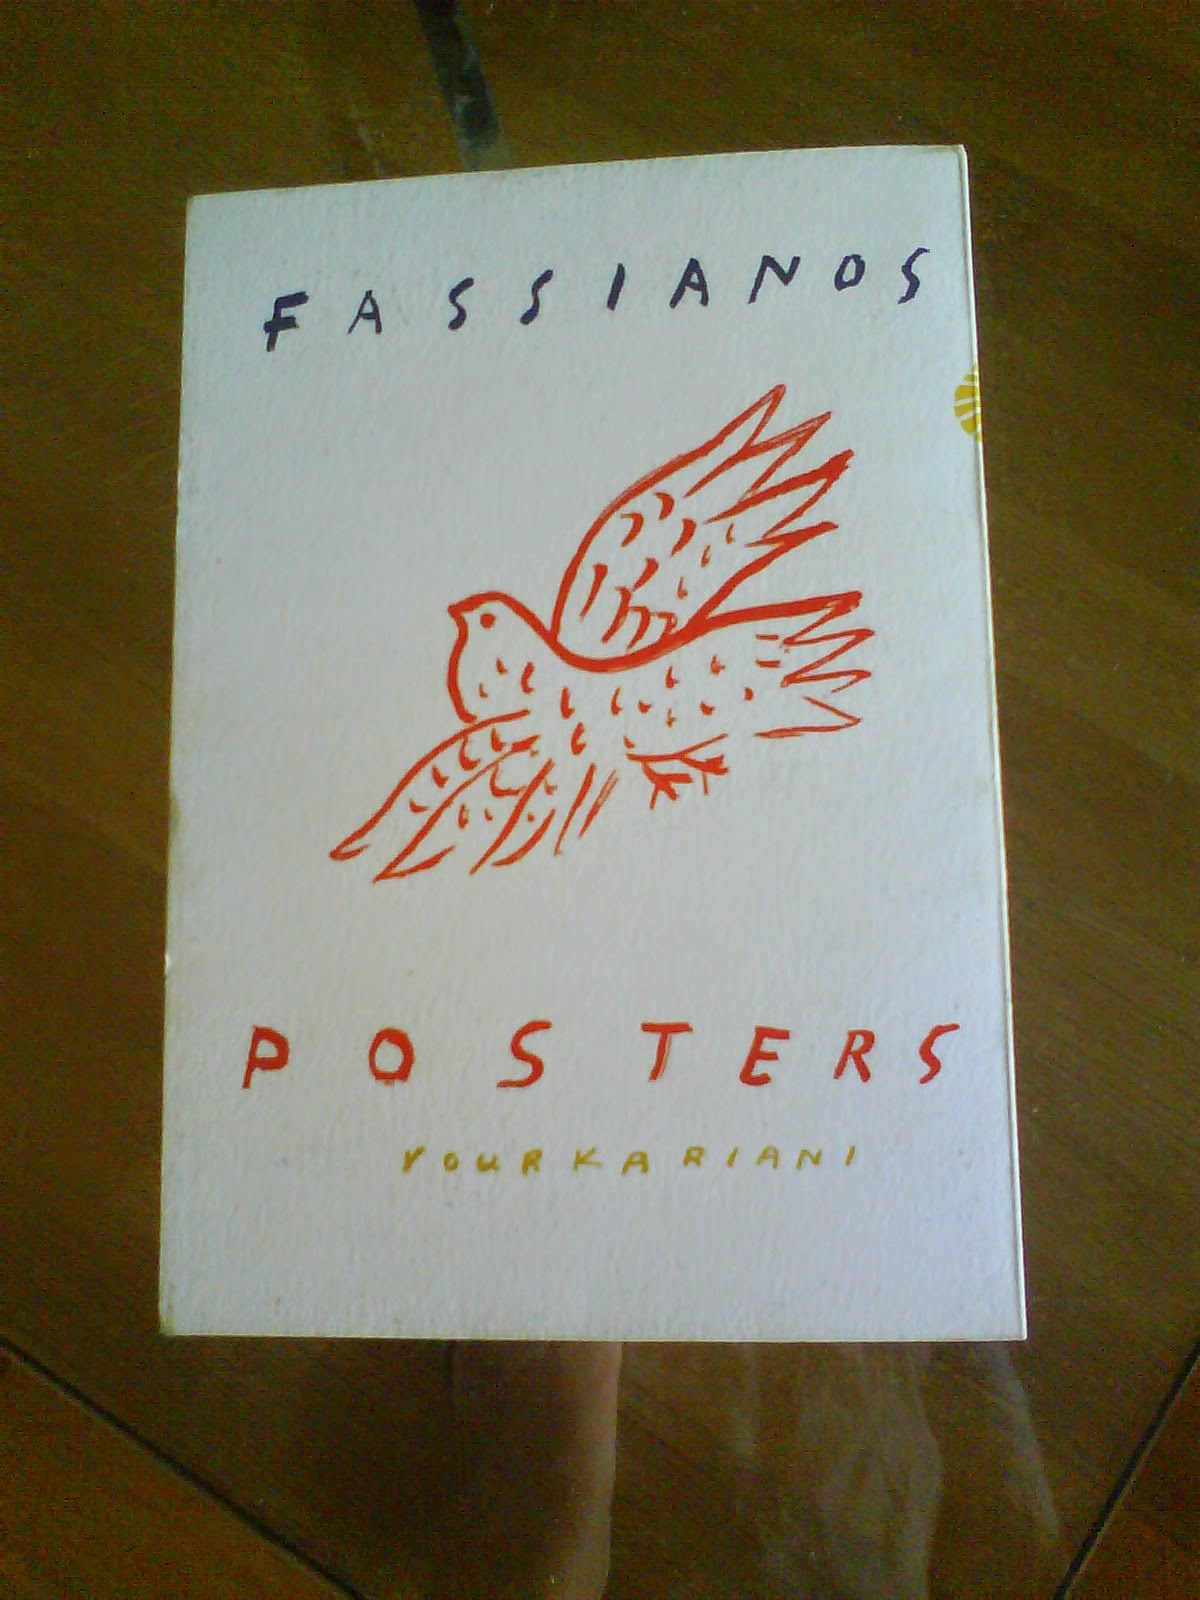 Book about Fassianos posters